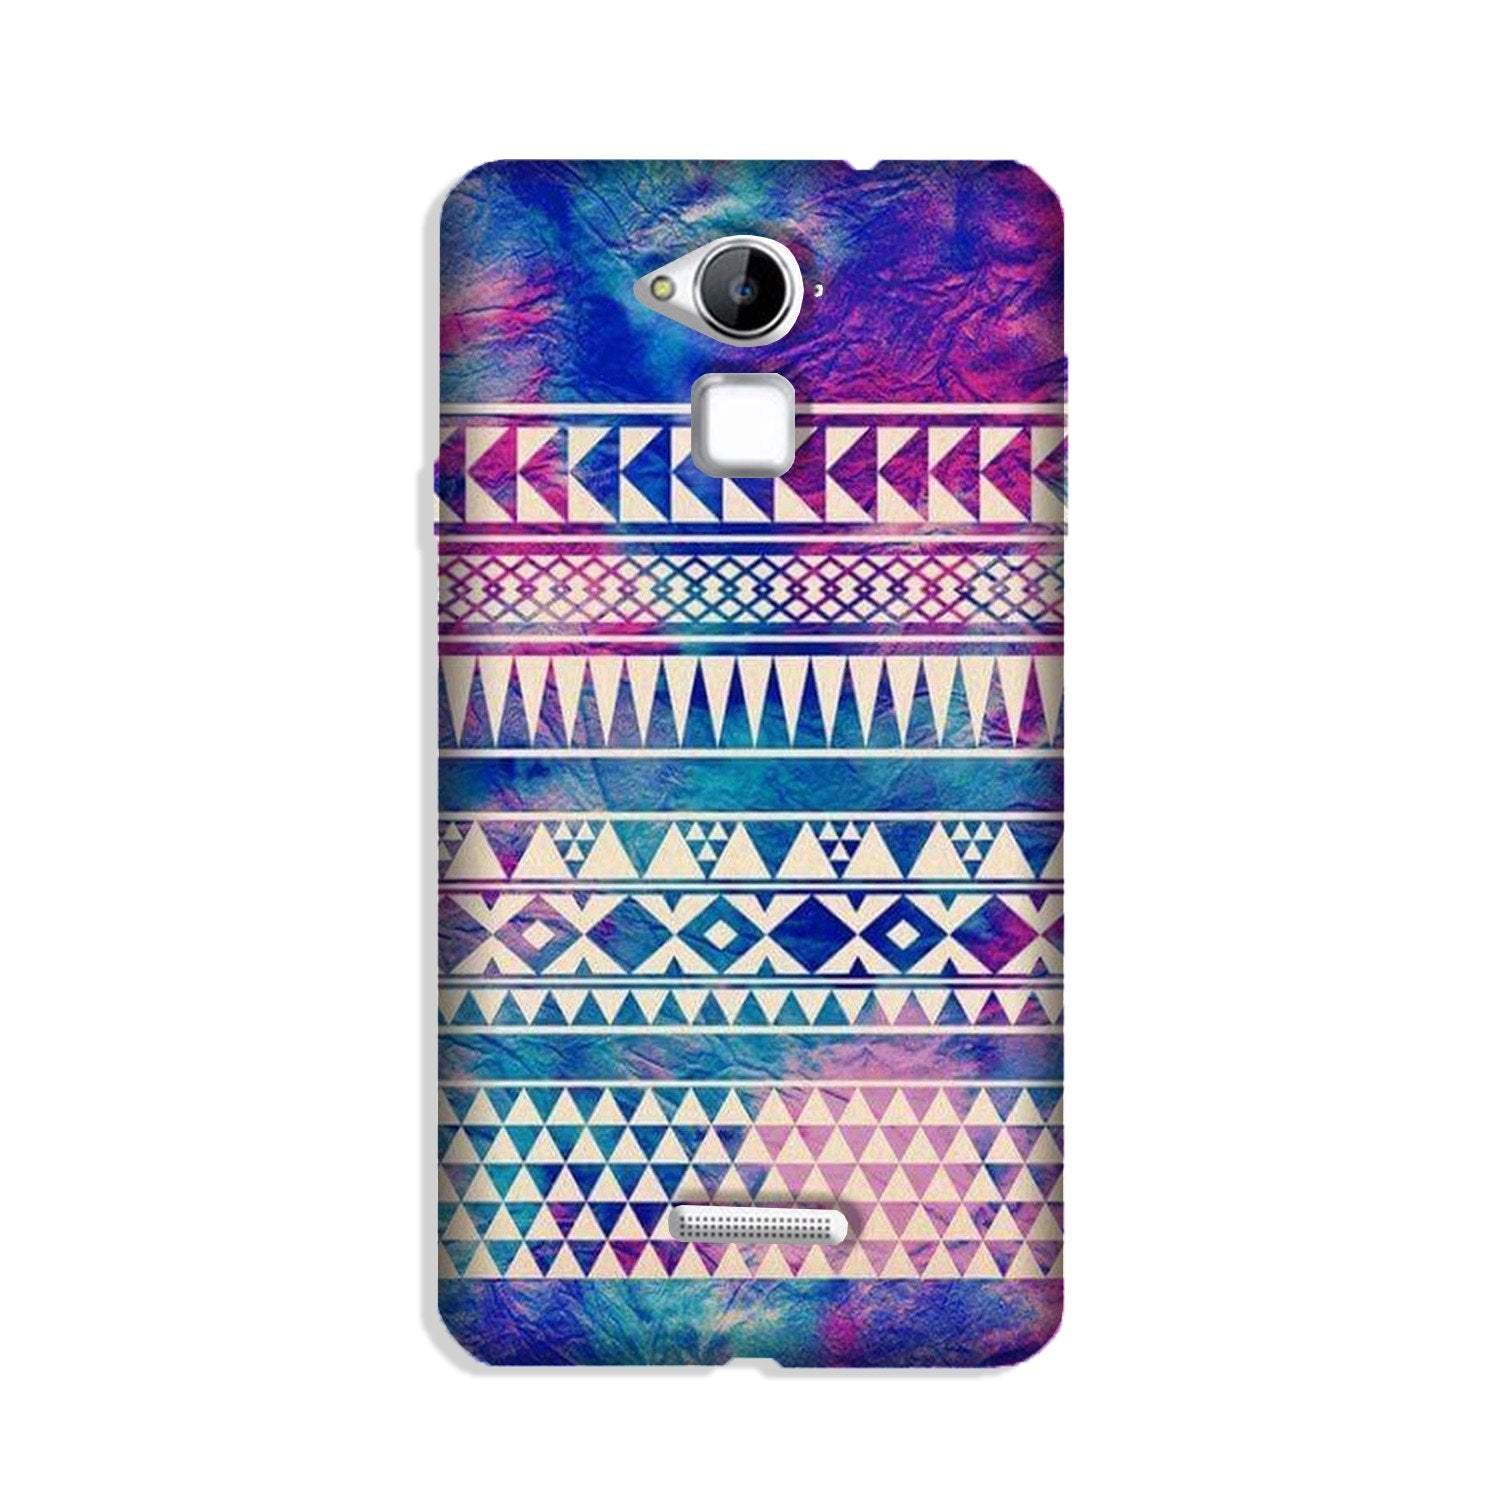 Modern Art Case for Coolpad Note 3